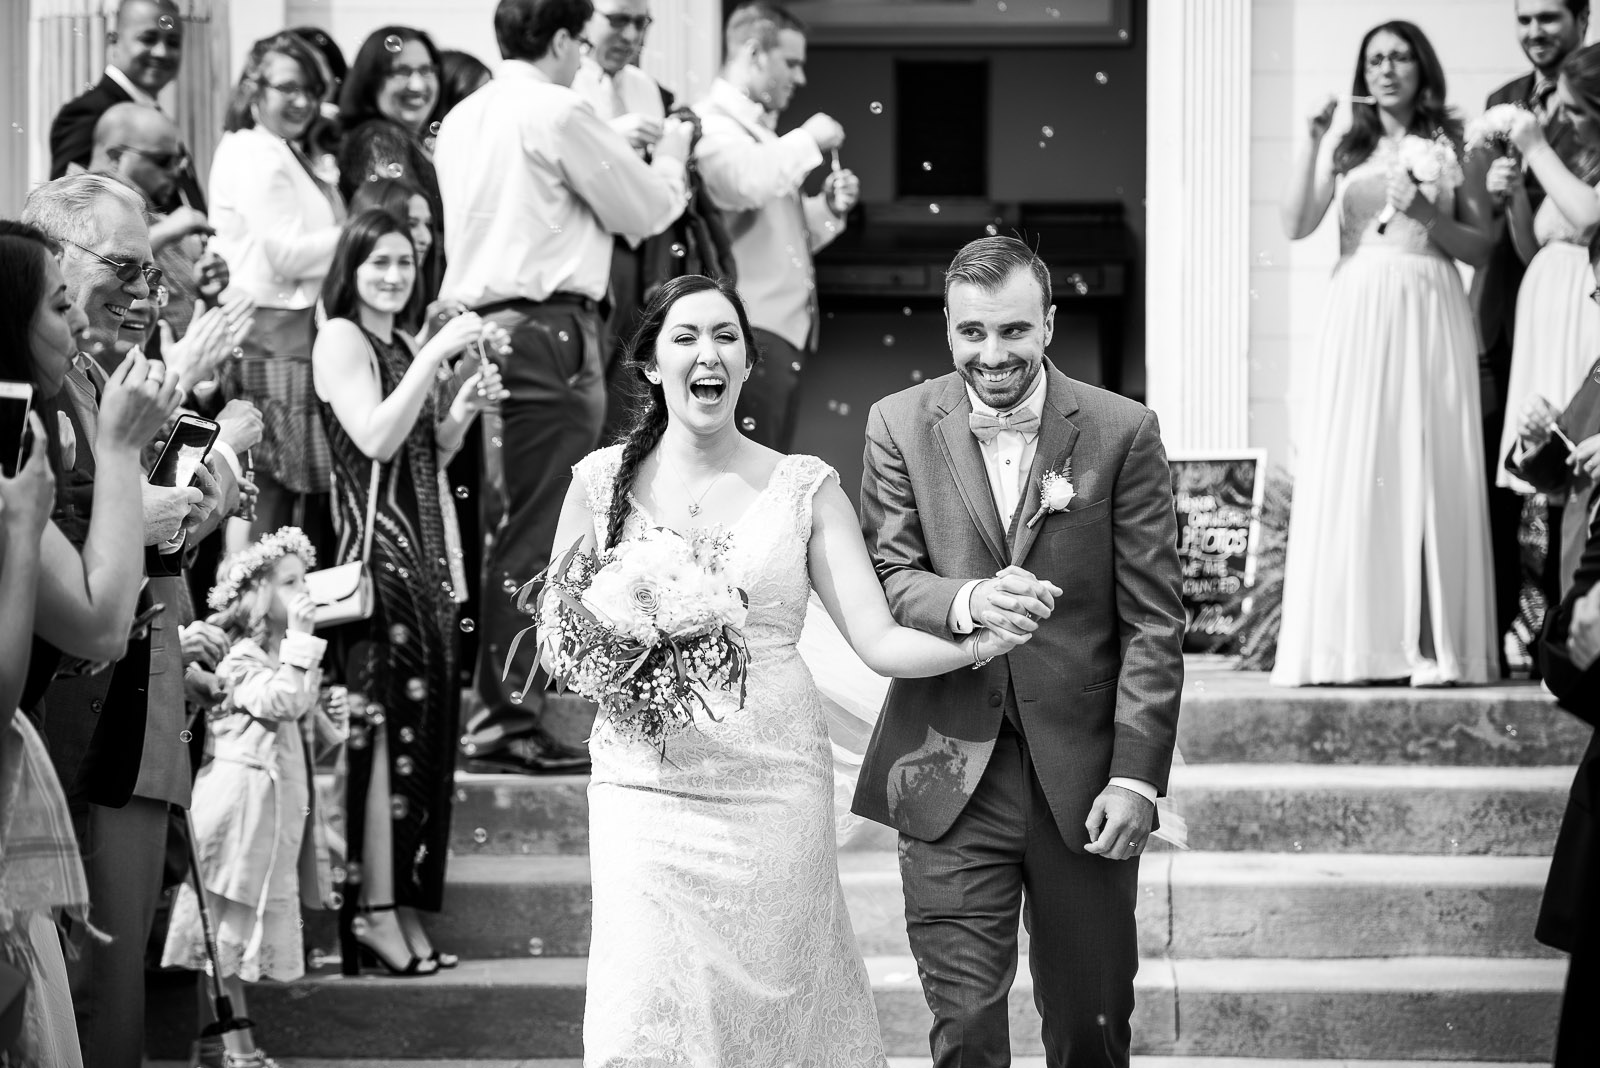 Eric_and_Christy_Photography_Blog_Katie_Travis_Wedding-49